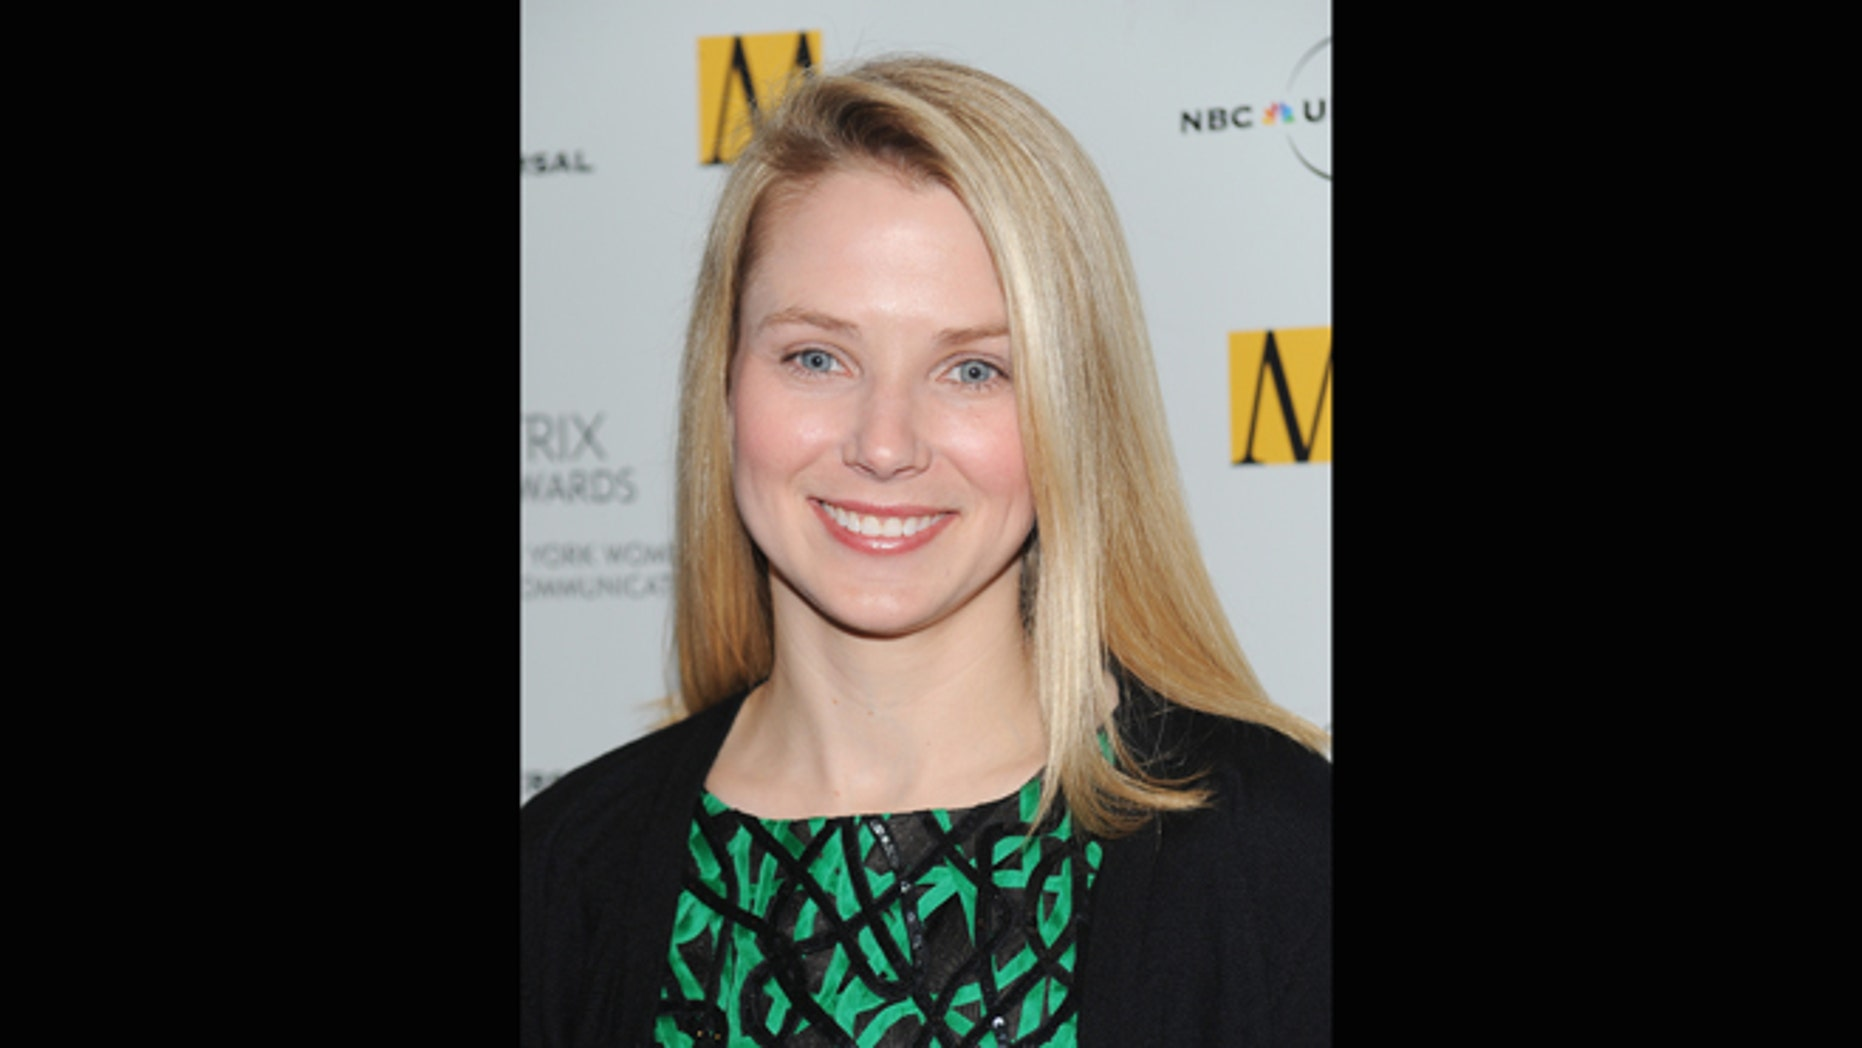 April 19, 2010: File photo of the then-Google vice president of search products and user experience, Marissa Mayer, attending the 2010 Matrix Awards presented by the New York Women in Communications at the Waldorf-Astoria Hotel in New York.